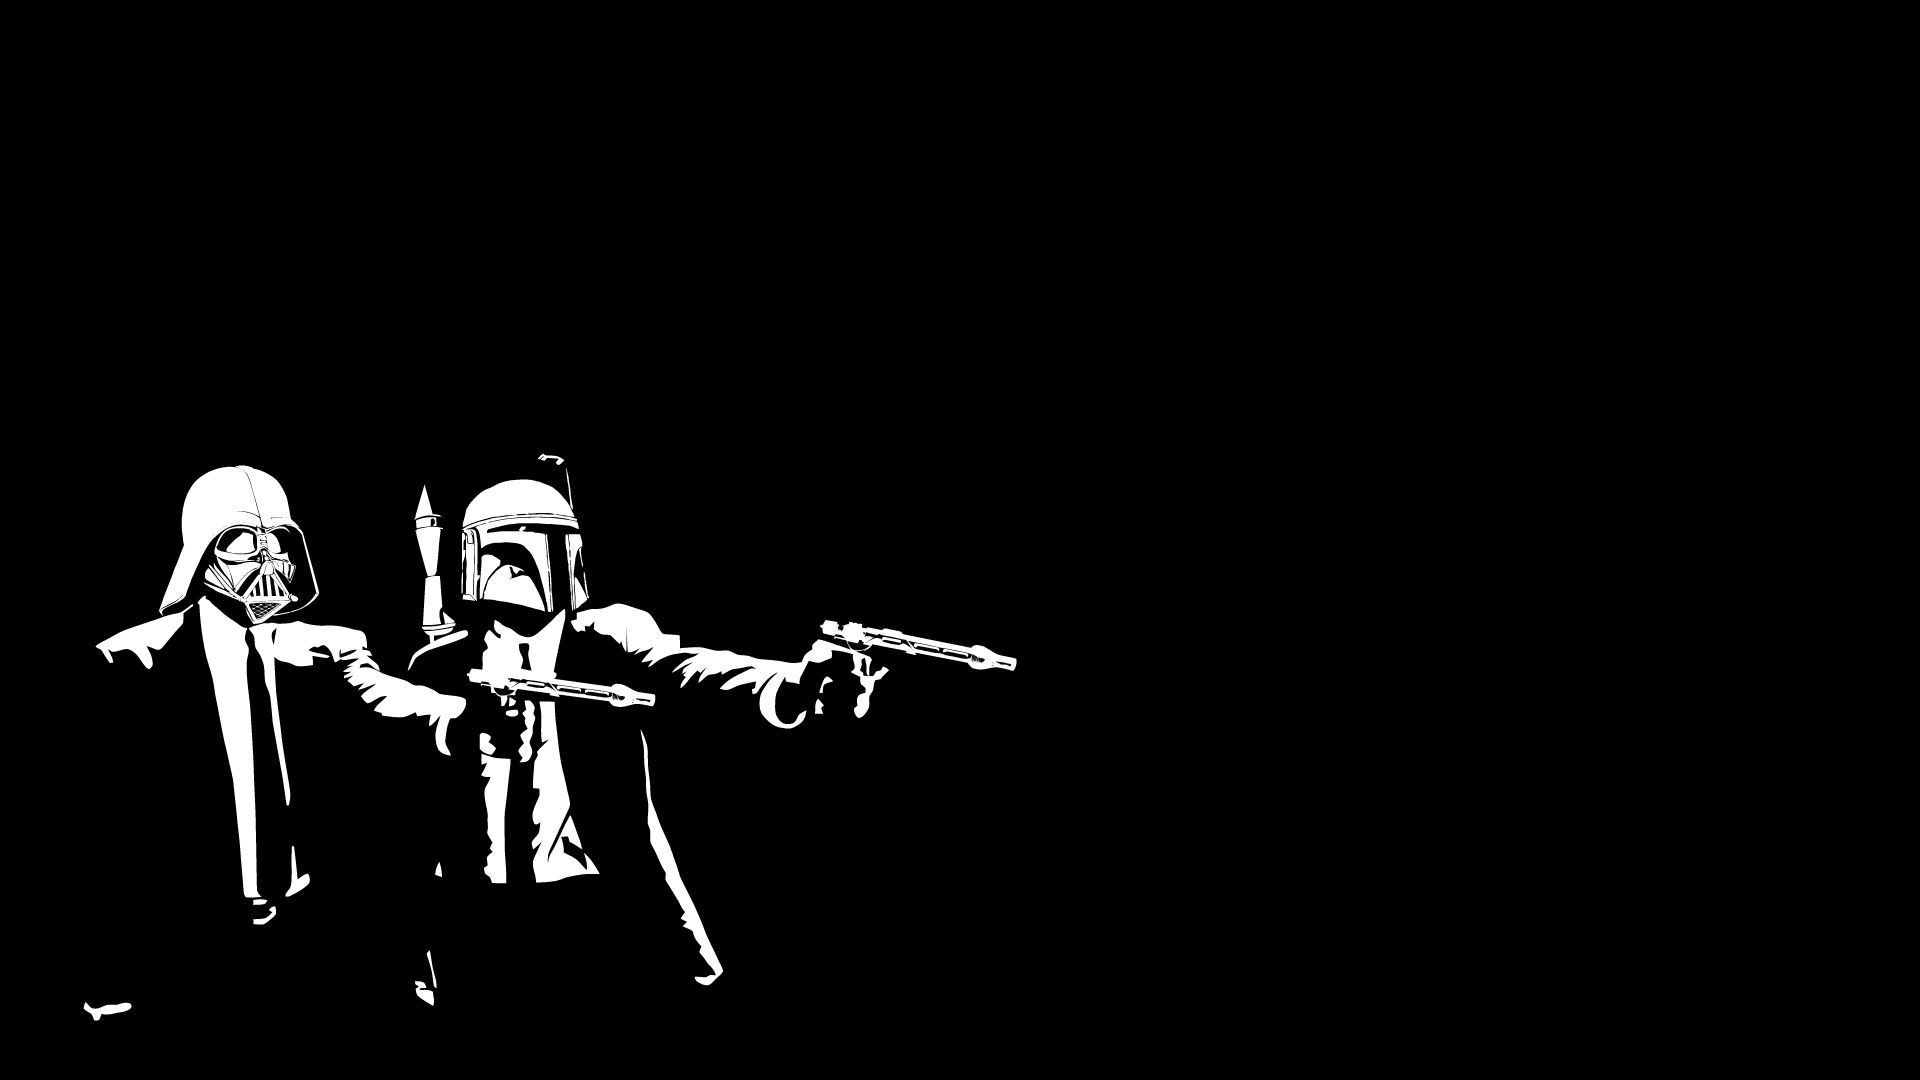 1920x1080 You can view, download and comment on Star Wars Pulp Fiction Crossover free  hd wallpapers